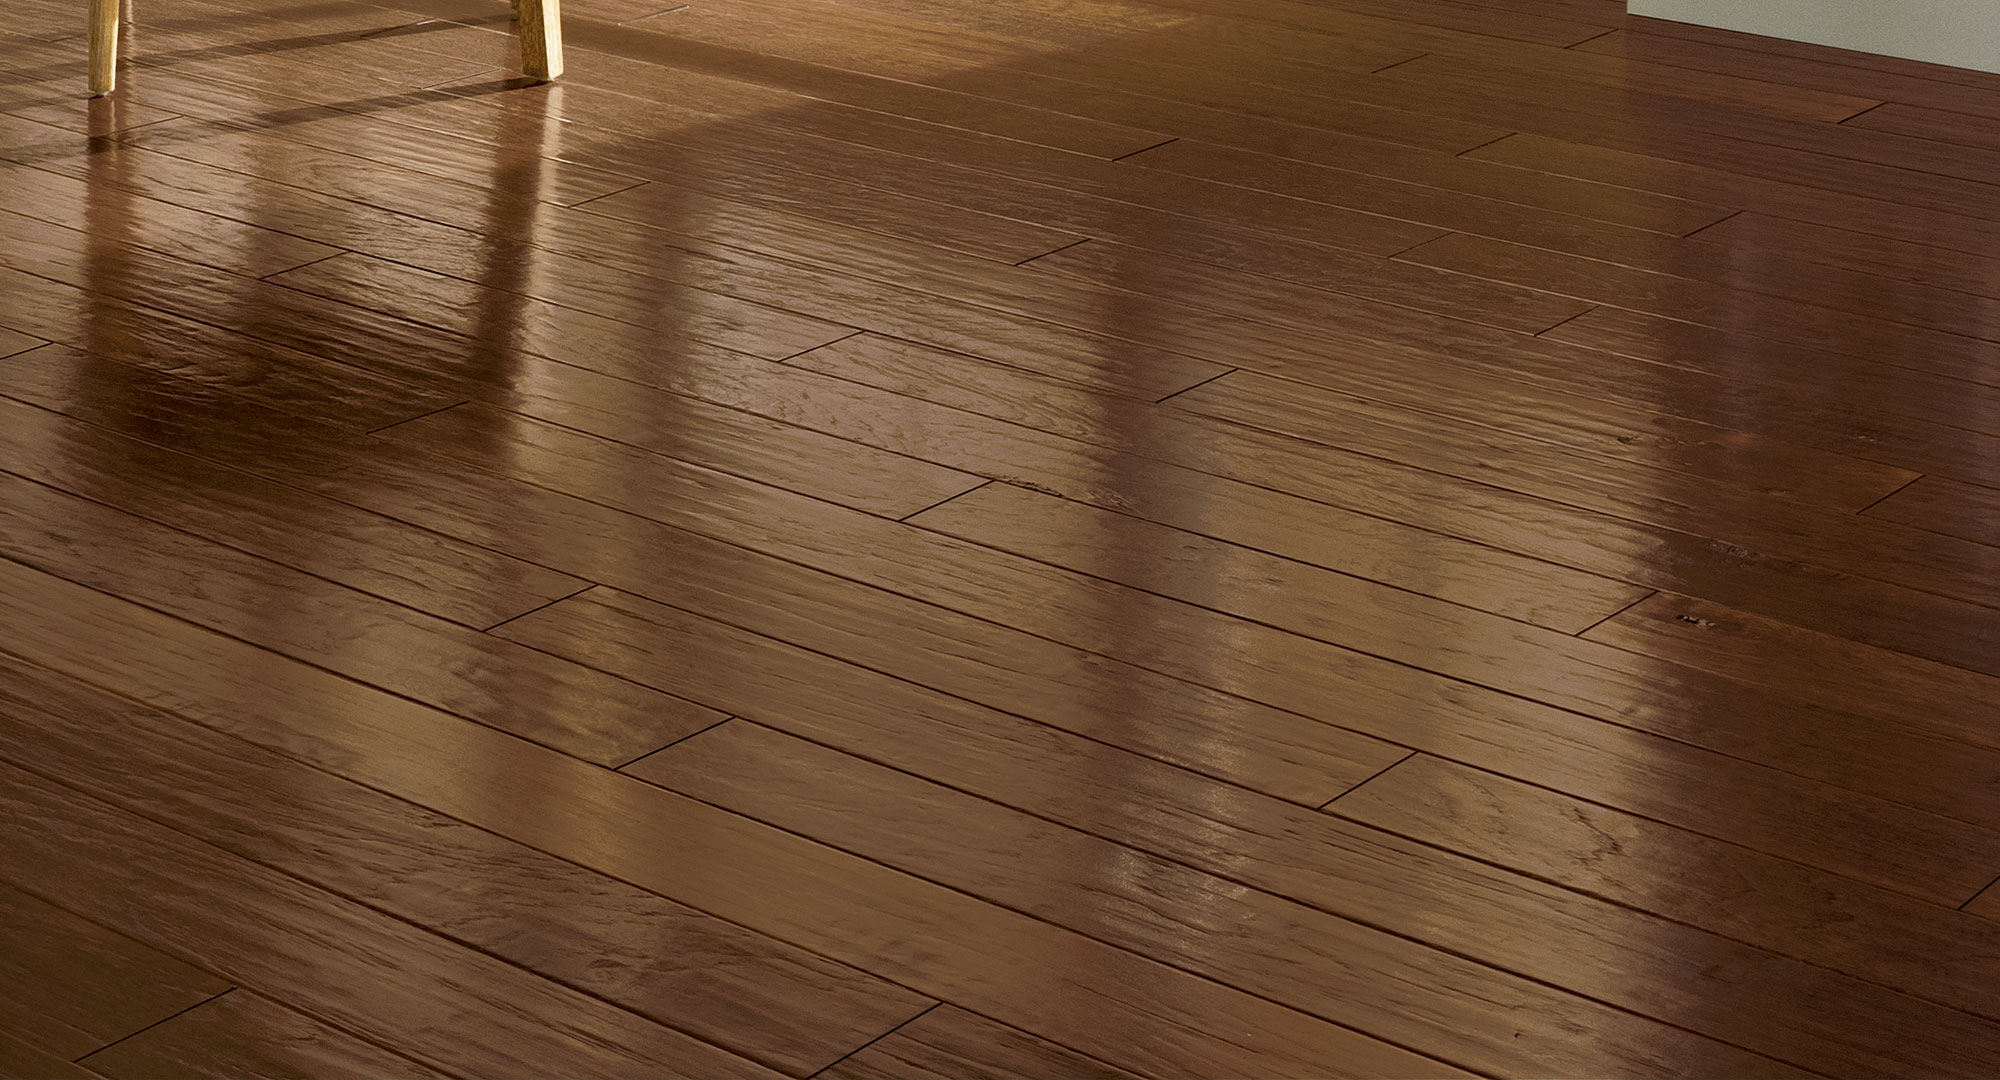 Workman Flooring Maple